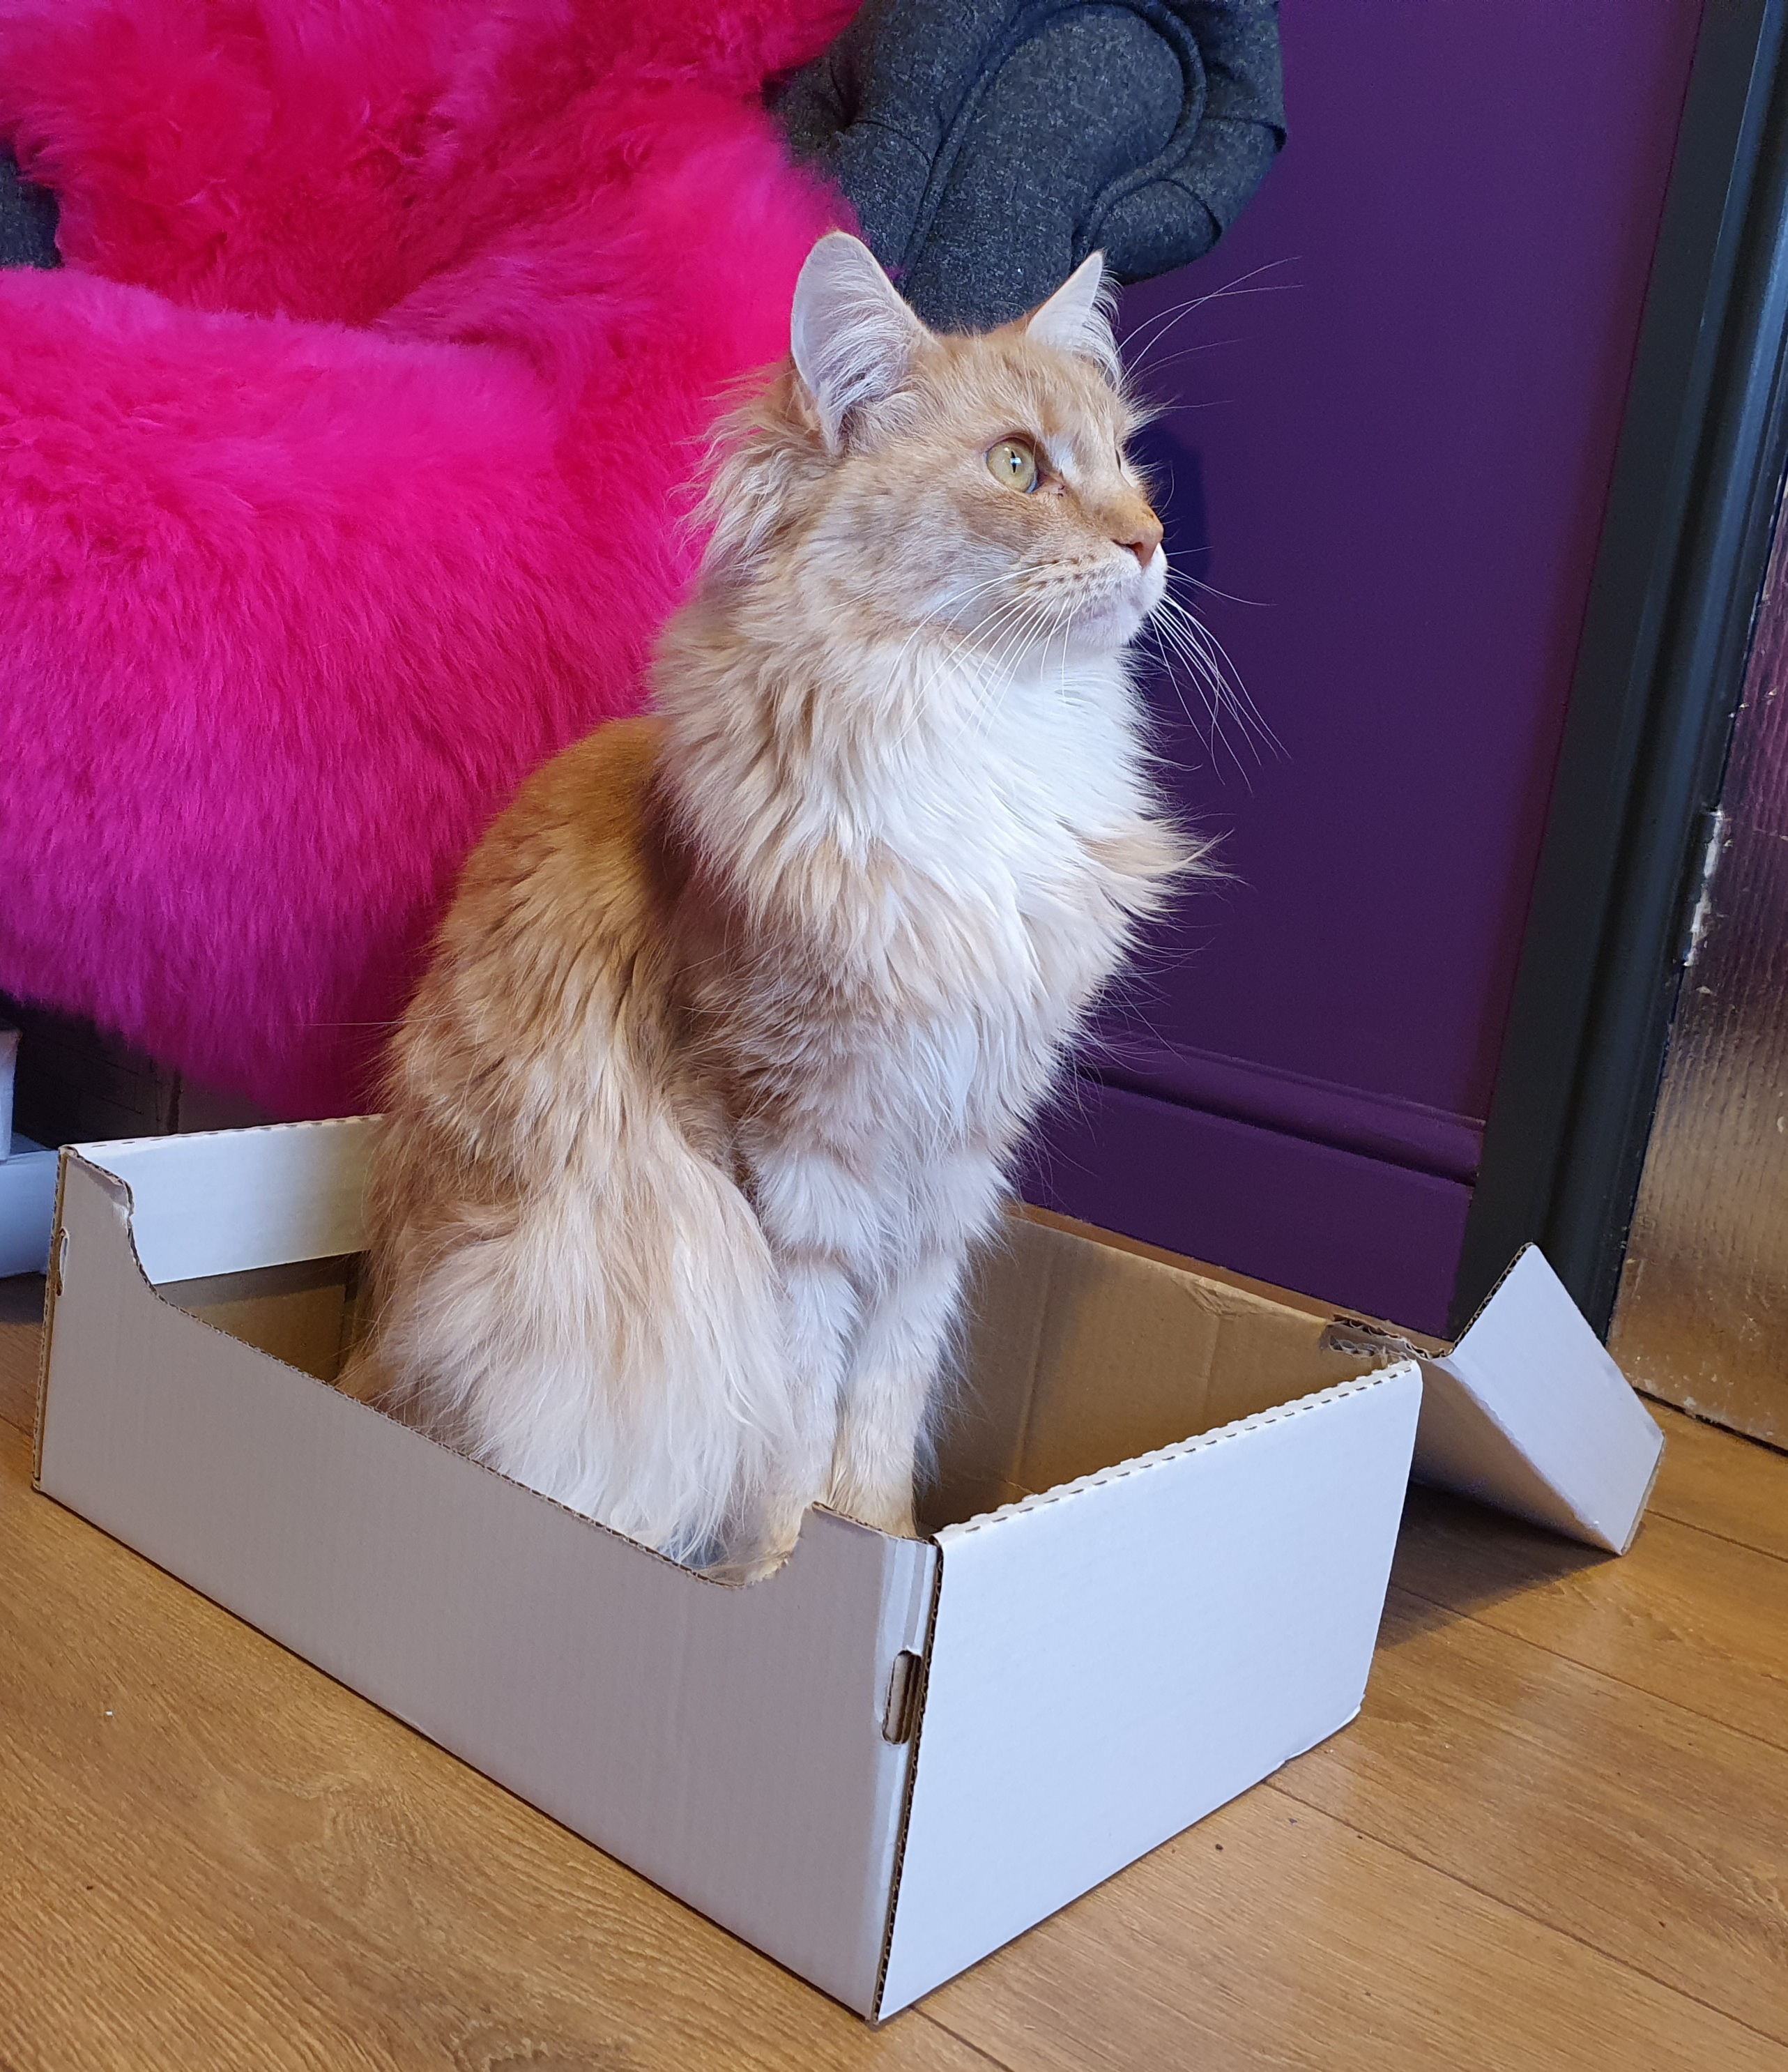 A ginger maine coon cat sat in a shoe box, looking to one side.